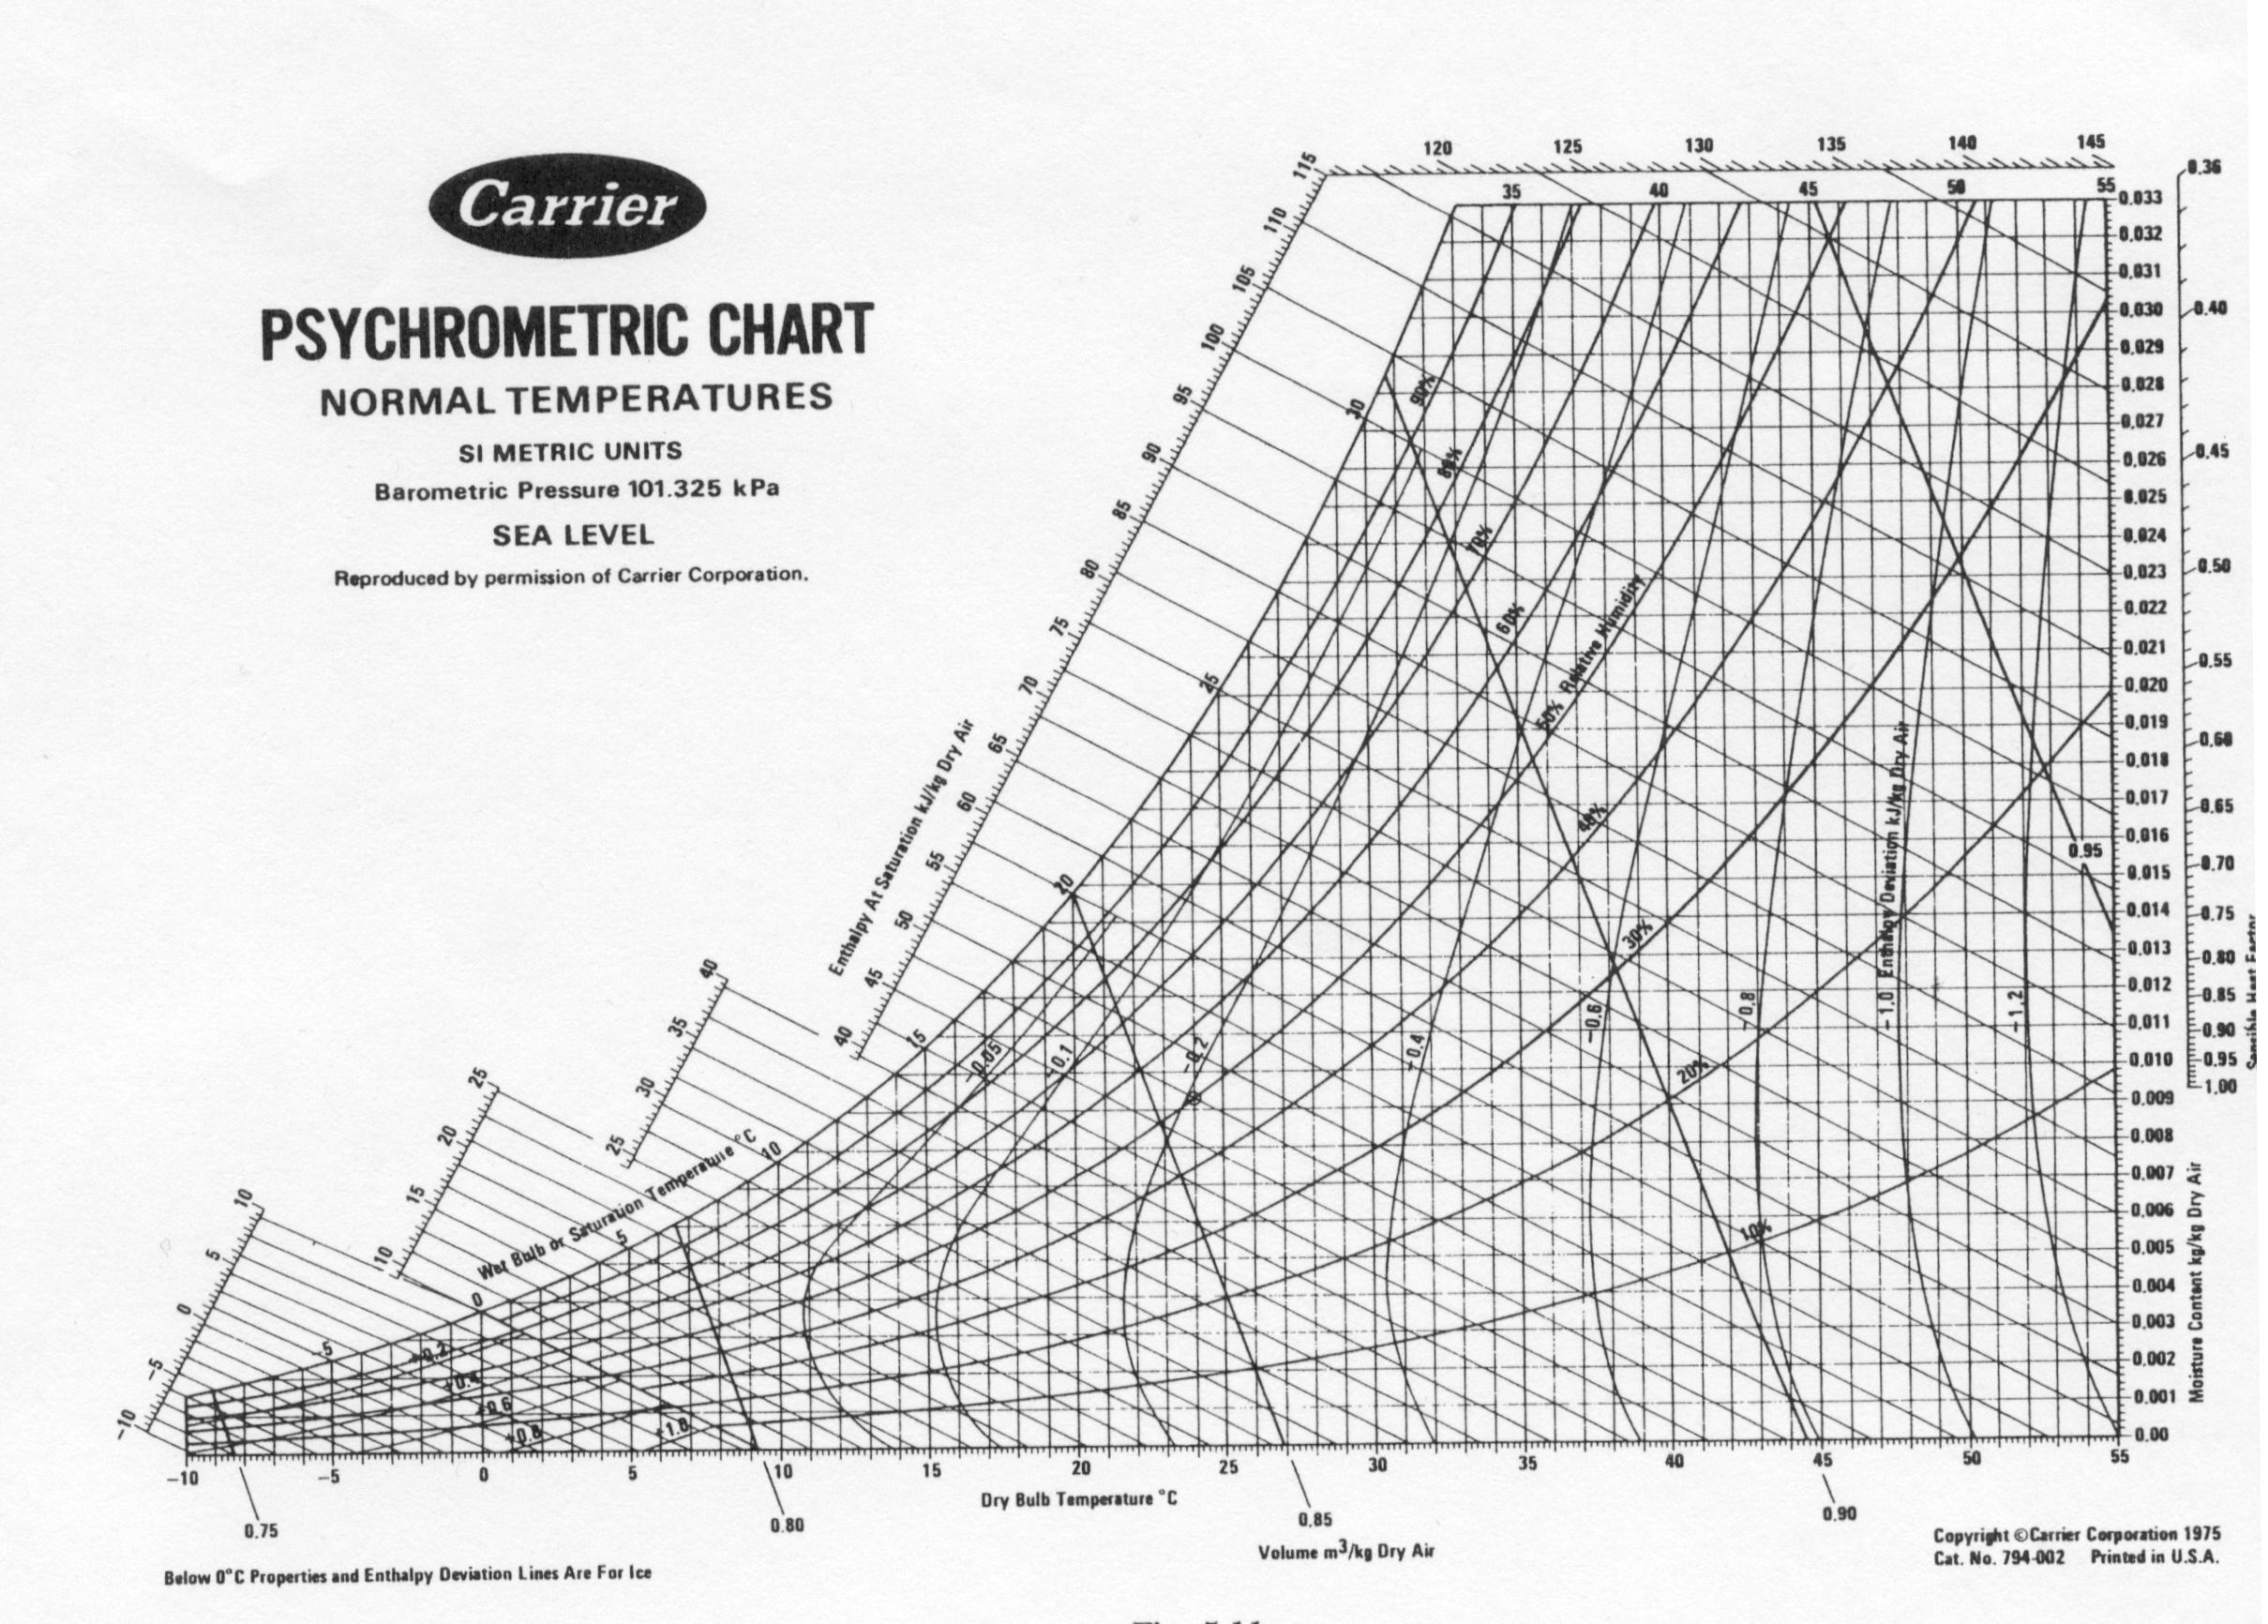 CARRIER PSYCHROMETRIC CHART PDF DOWNLOAD